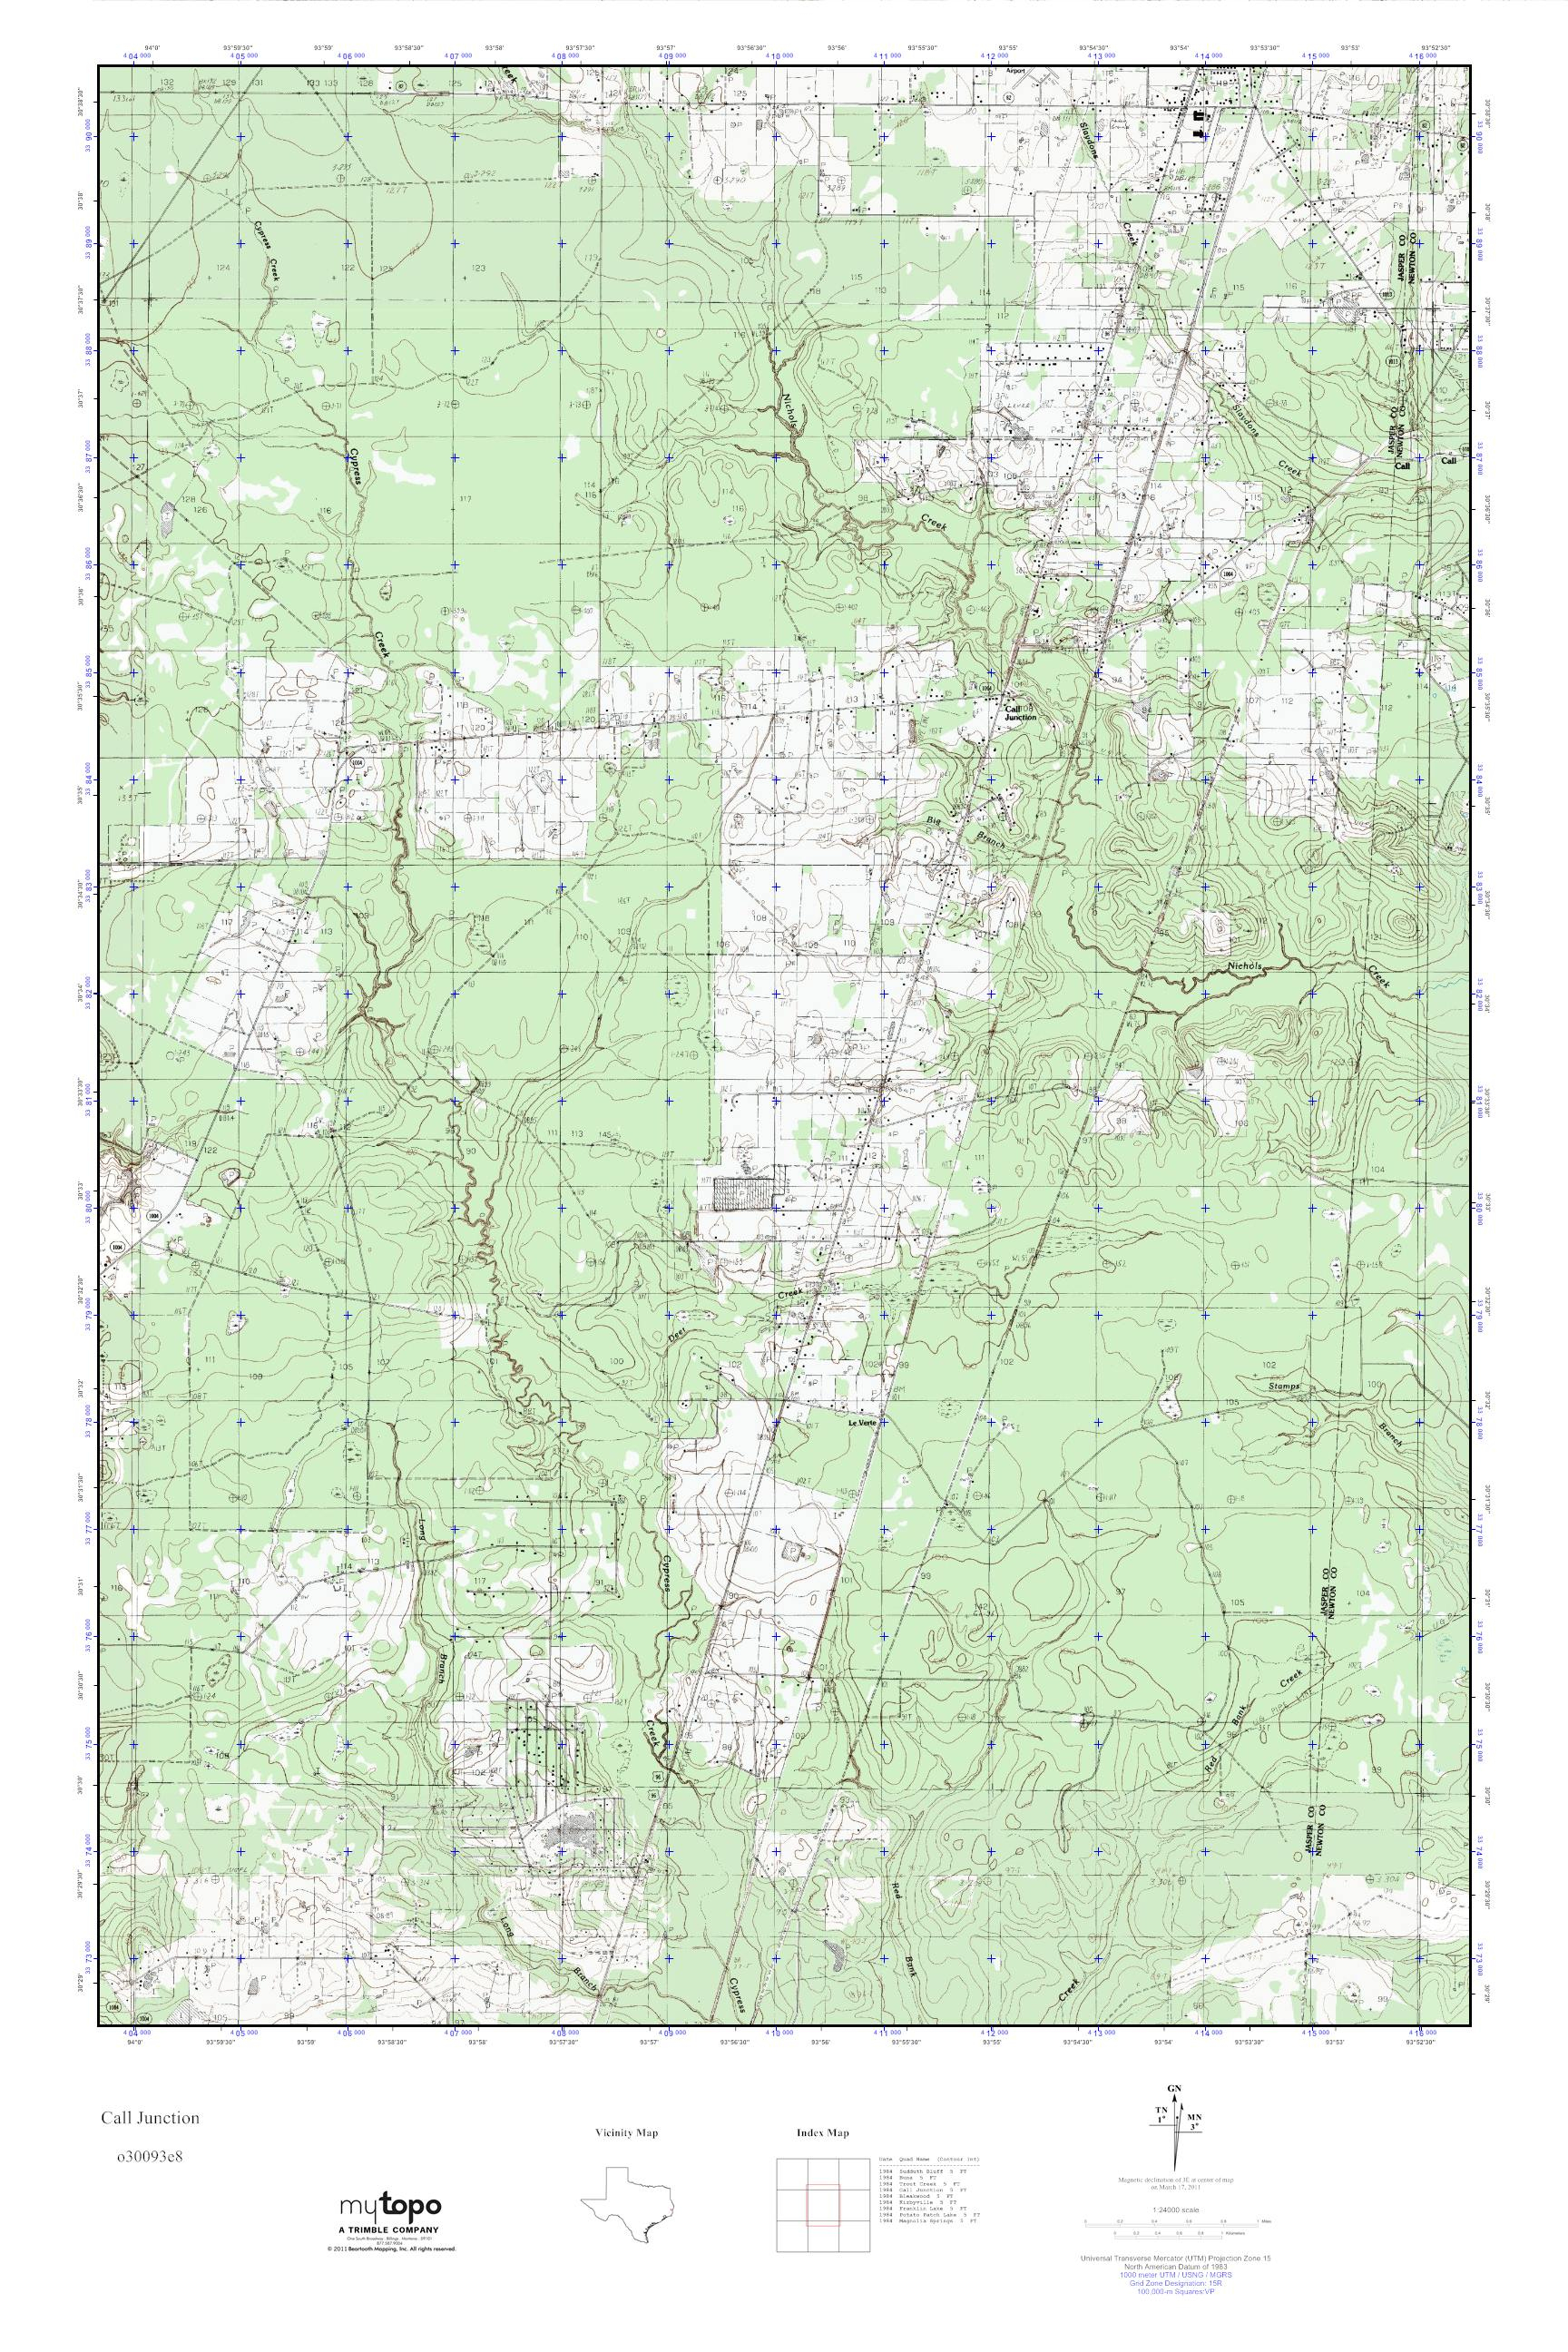 Mytopo Call Junction, Texas Usgs Quad Topo Map - Junction Texas Map